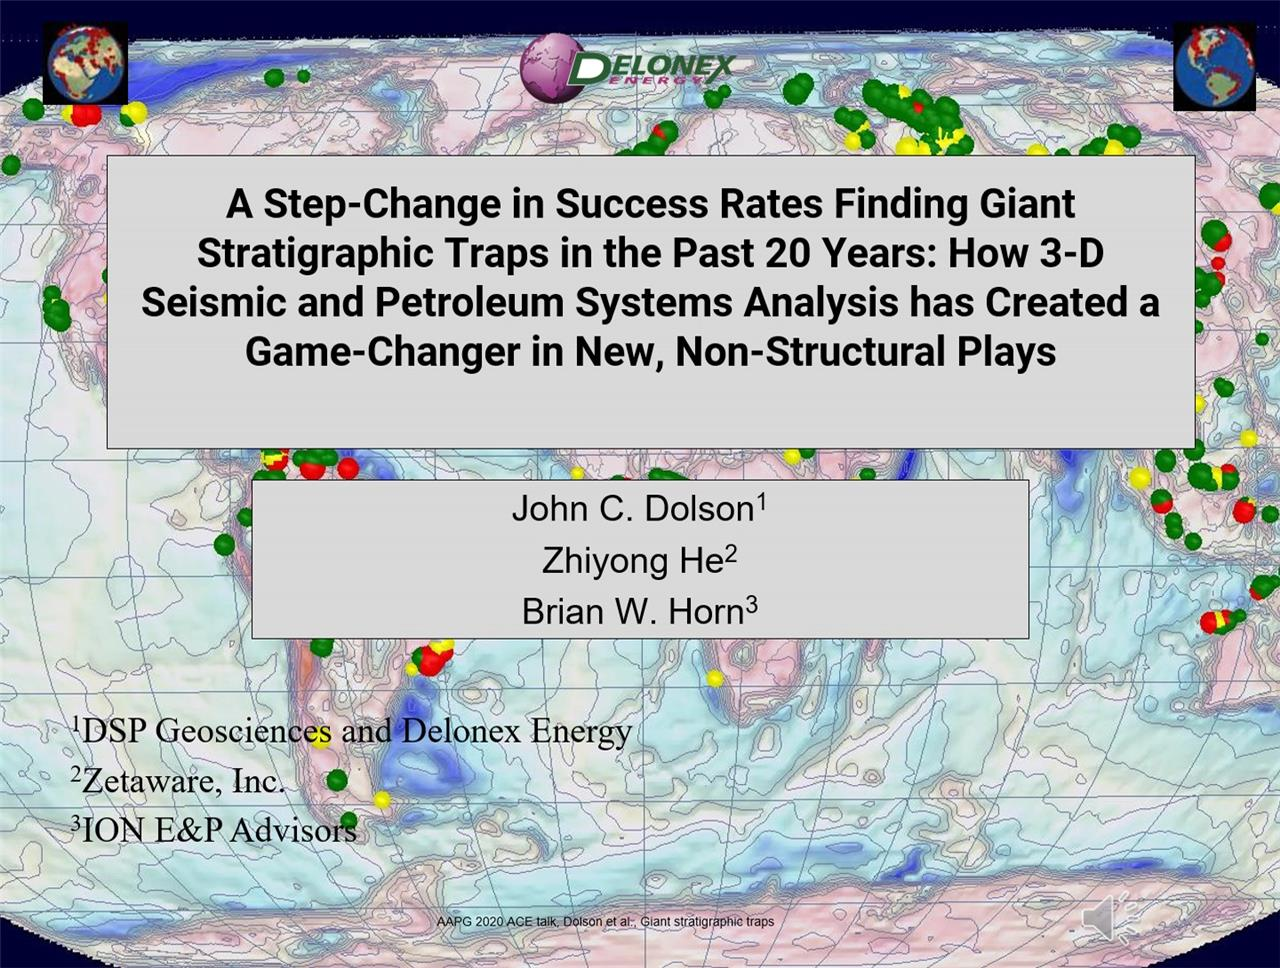 John Dolson - A step-change in success rates finding giant stratigraphic traps in the past 20 years: how 3D seismic and petroleum systems analysis has created a 'game-changer' in new, non-structural plays